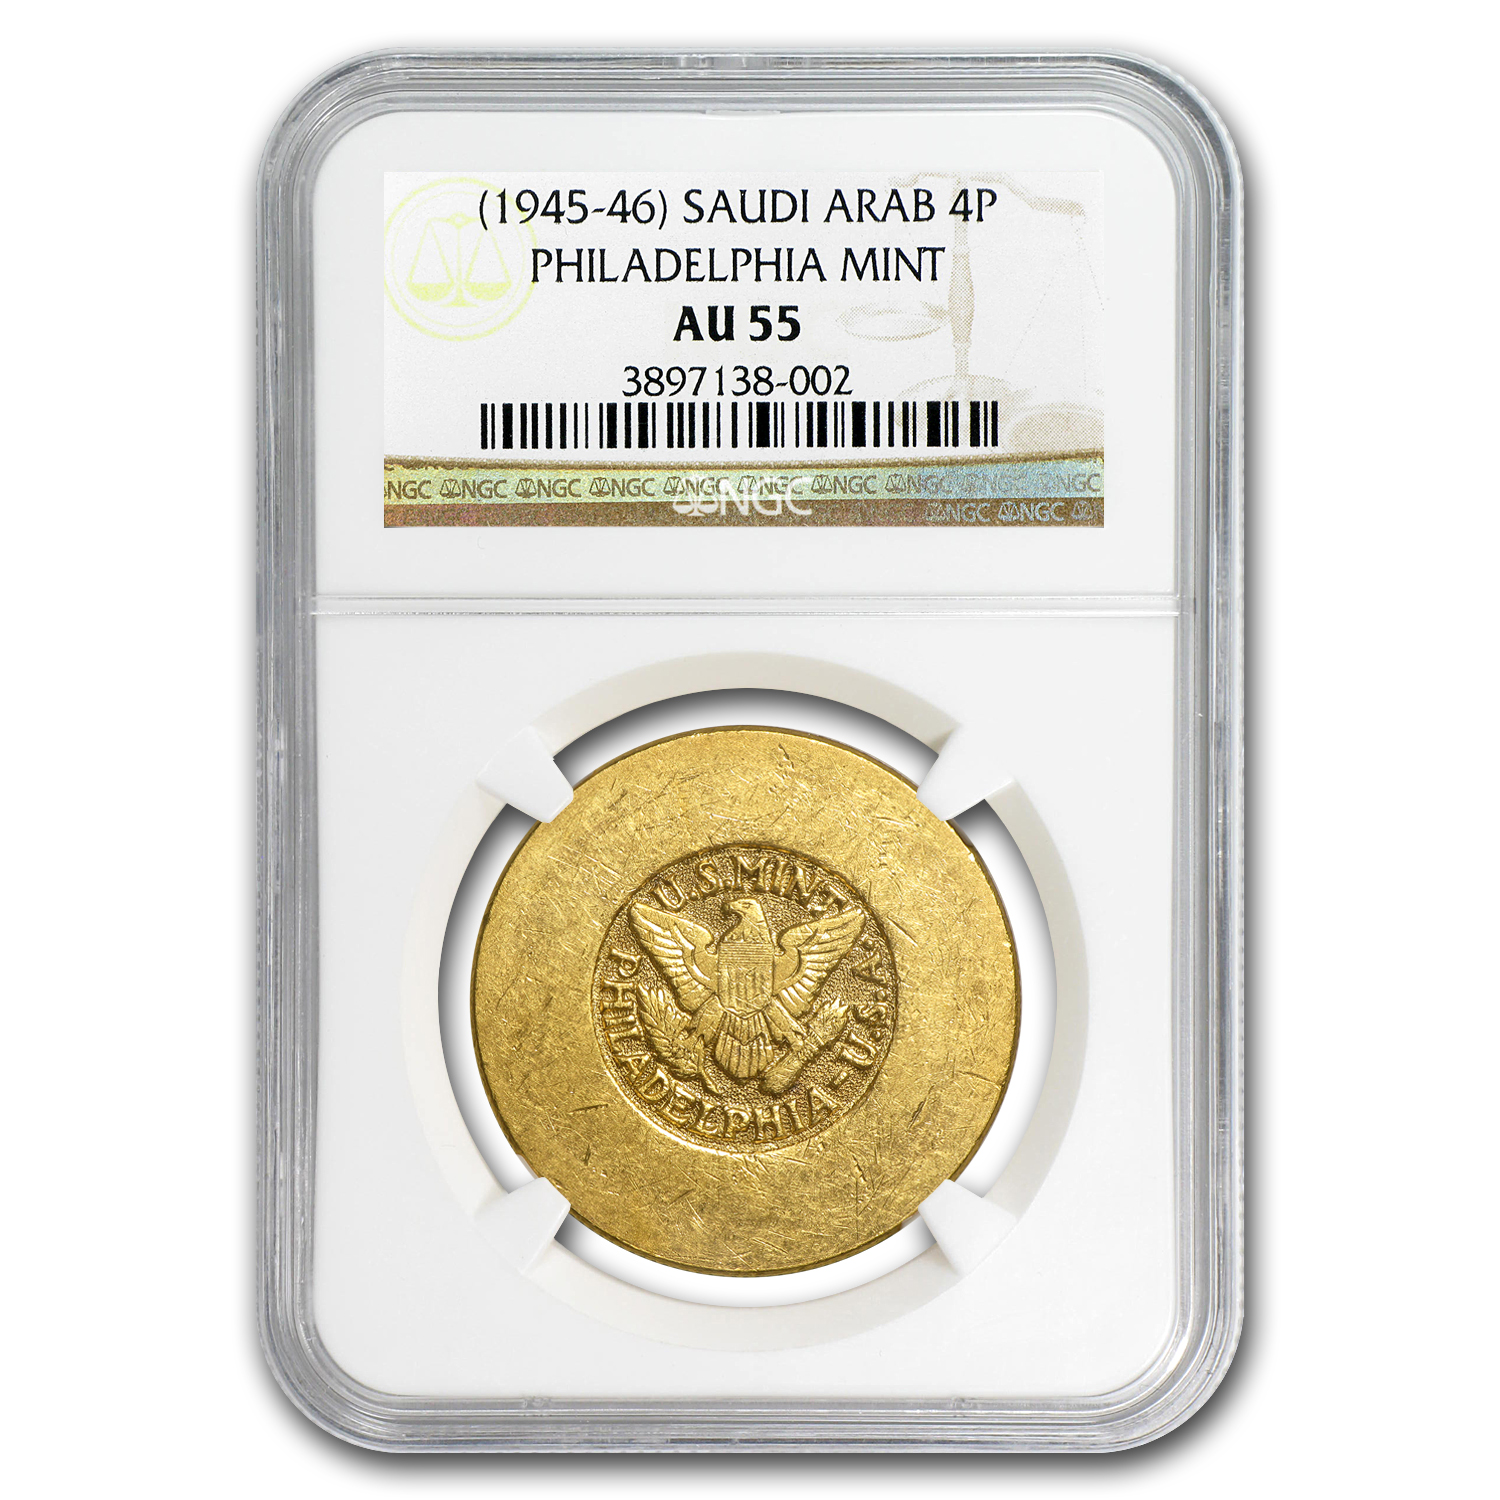 1945-46 Saudi Arabia Gold 4 Pounds ARAMCO U.S. Mint AU-55 NGC